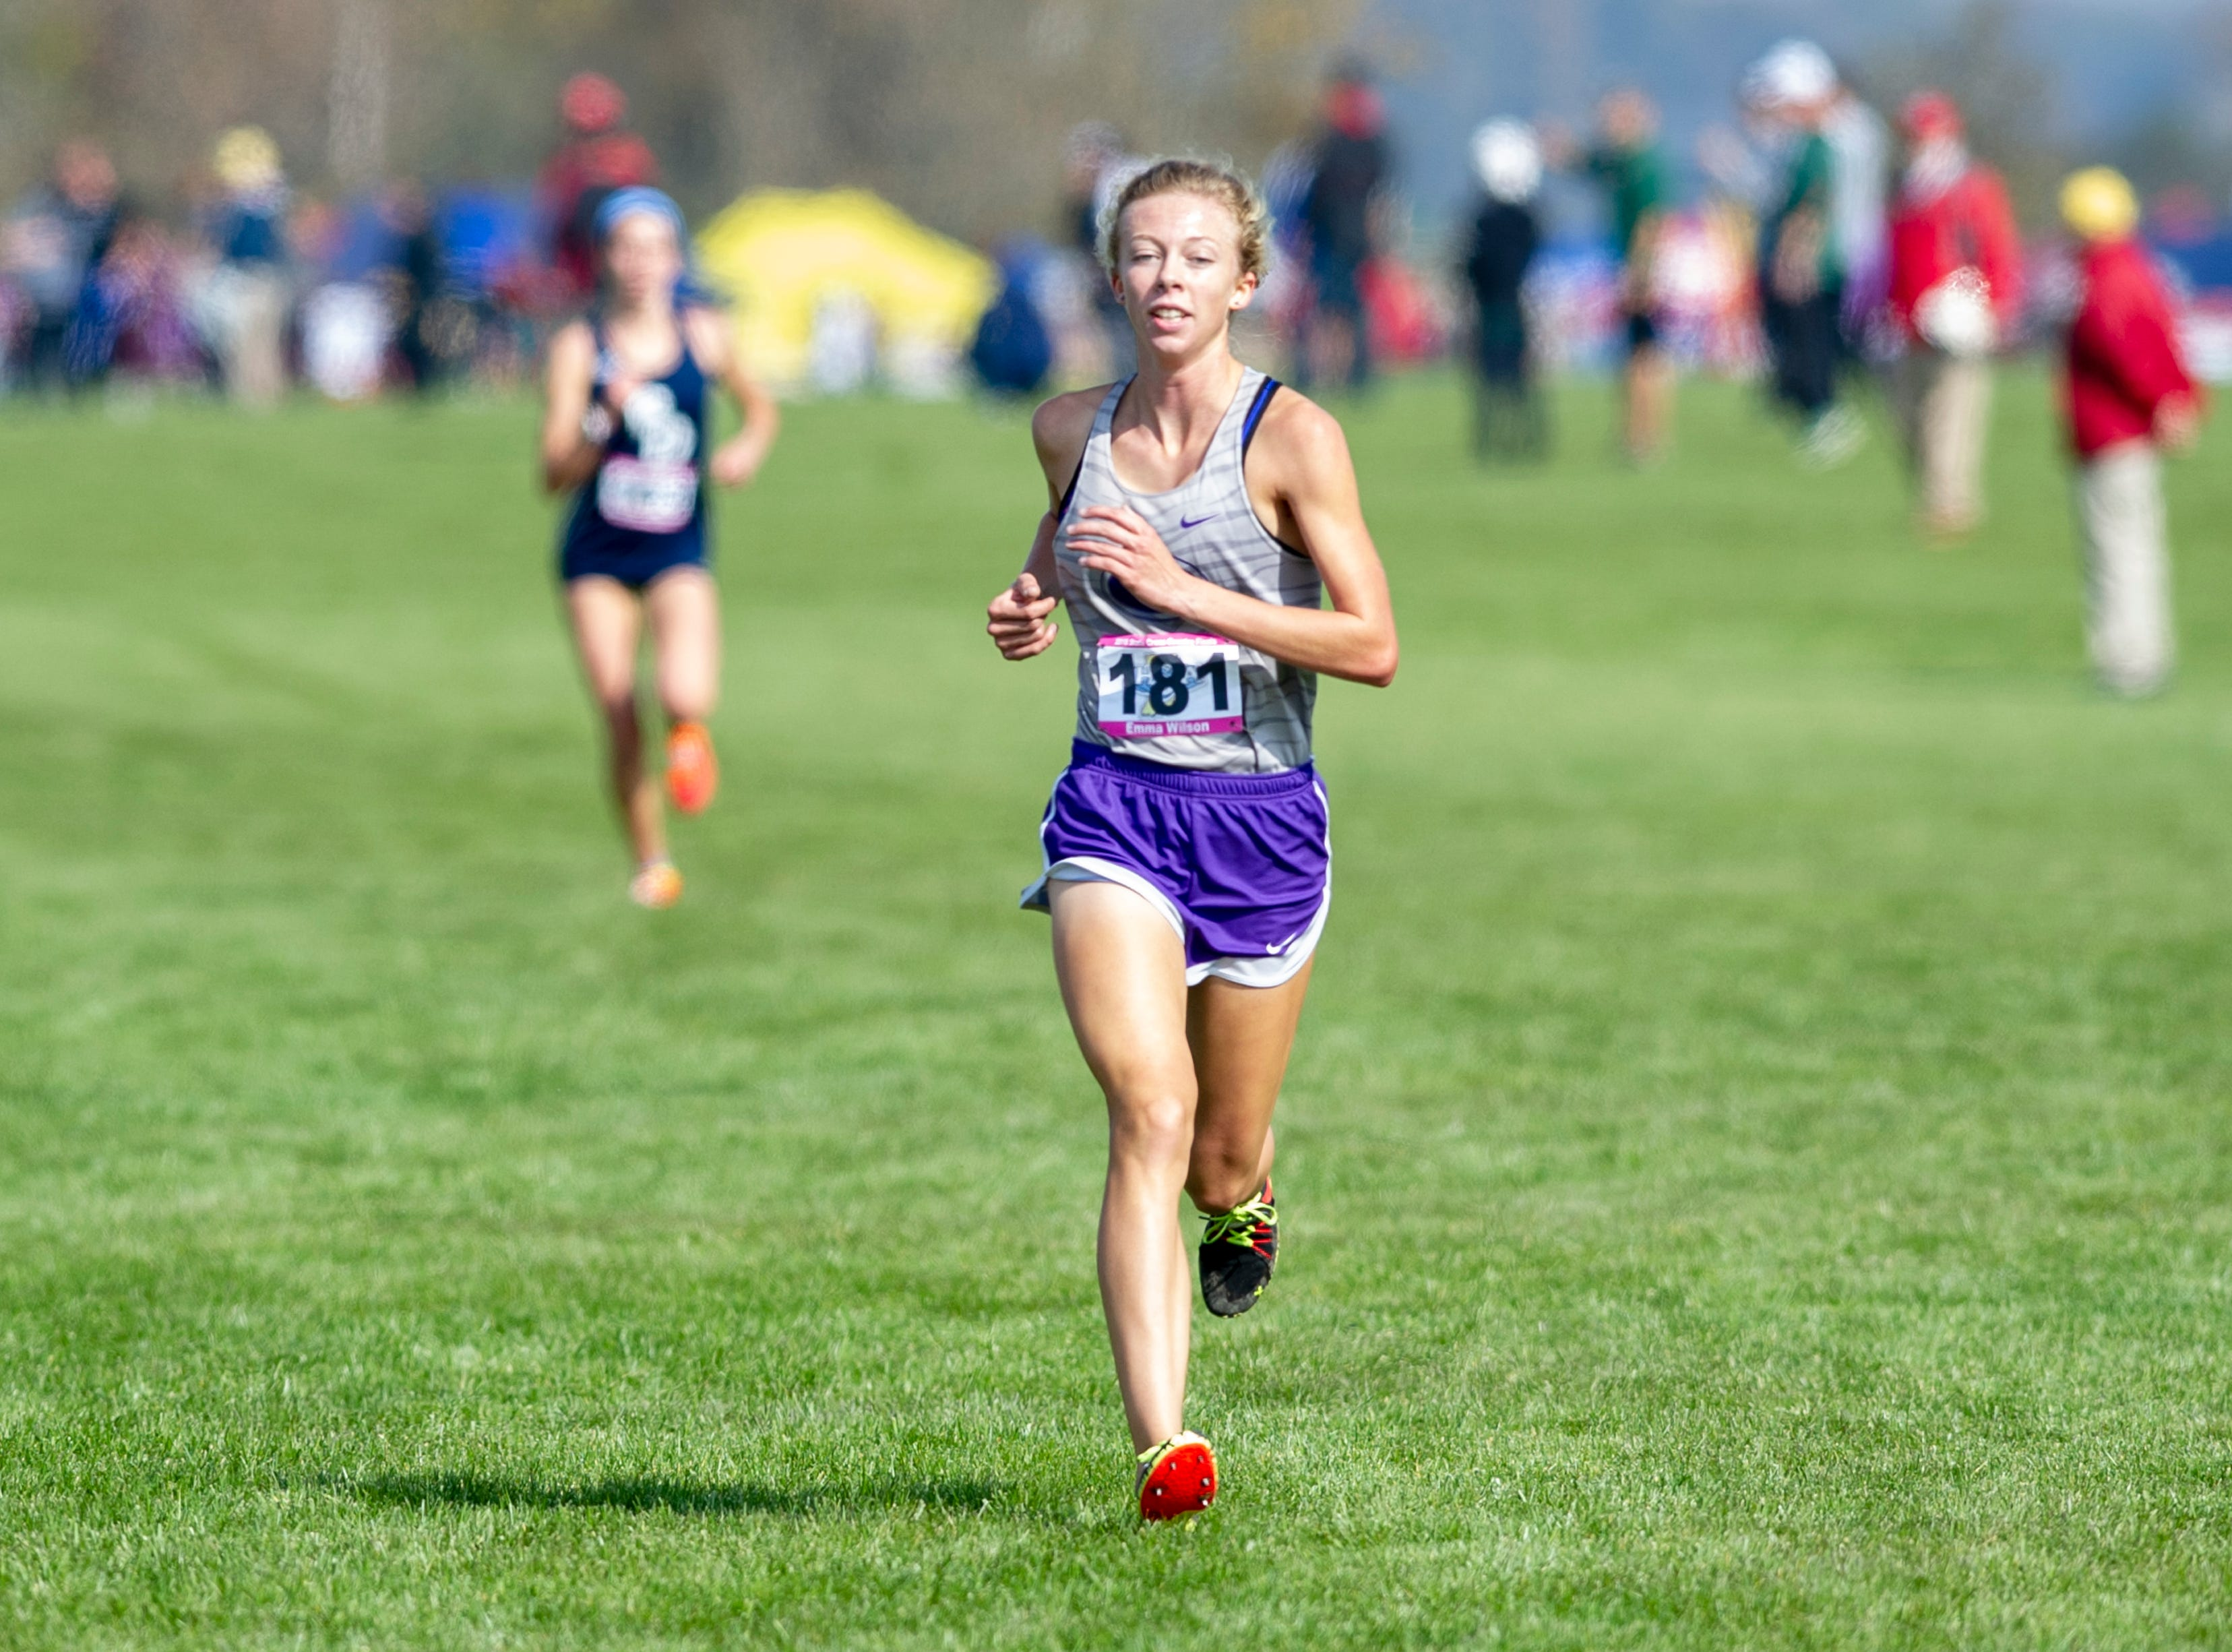 Greencastle High School runner Emma Wilson (181) leads the entire field along the course during the running of the IHSAA Boys' and Girls' Cross Country State Finals meet Saturday, Oct. 27, 2018, at The Lavern Gibson Championship Cross Country Course at Terre Haute.